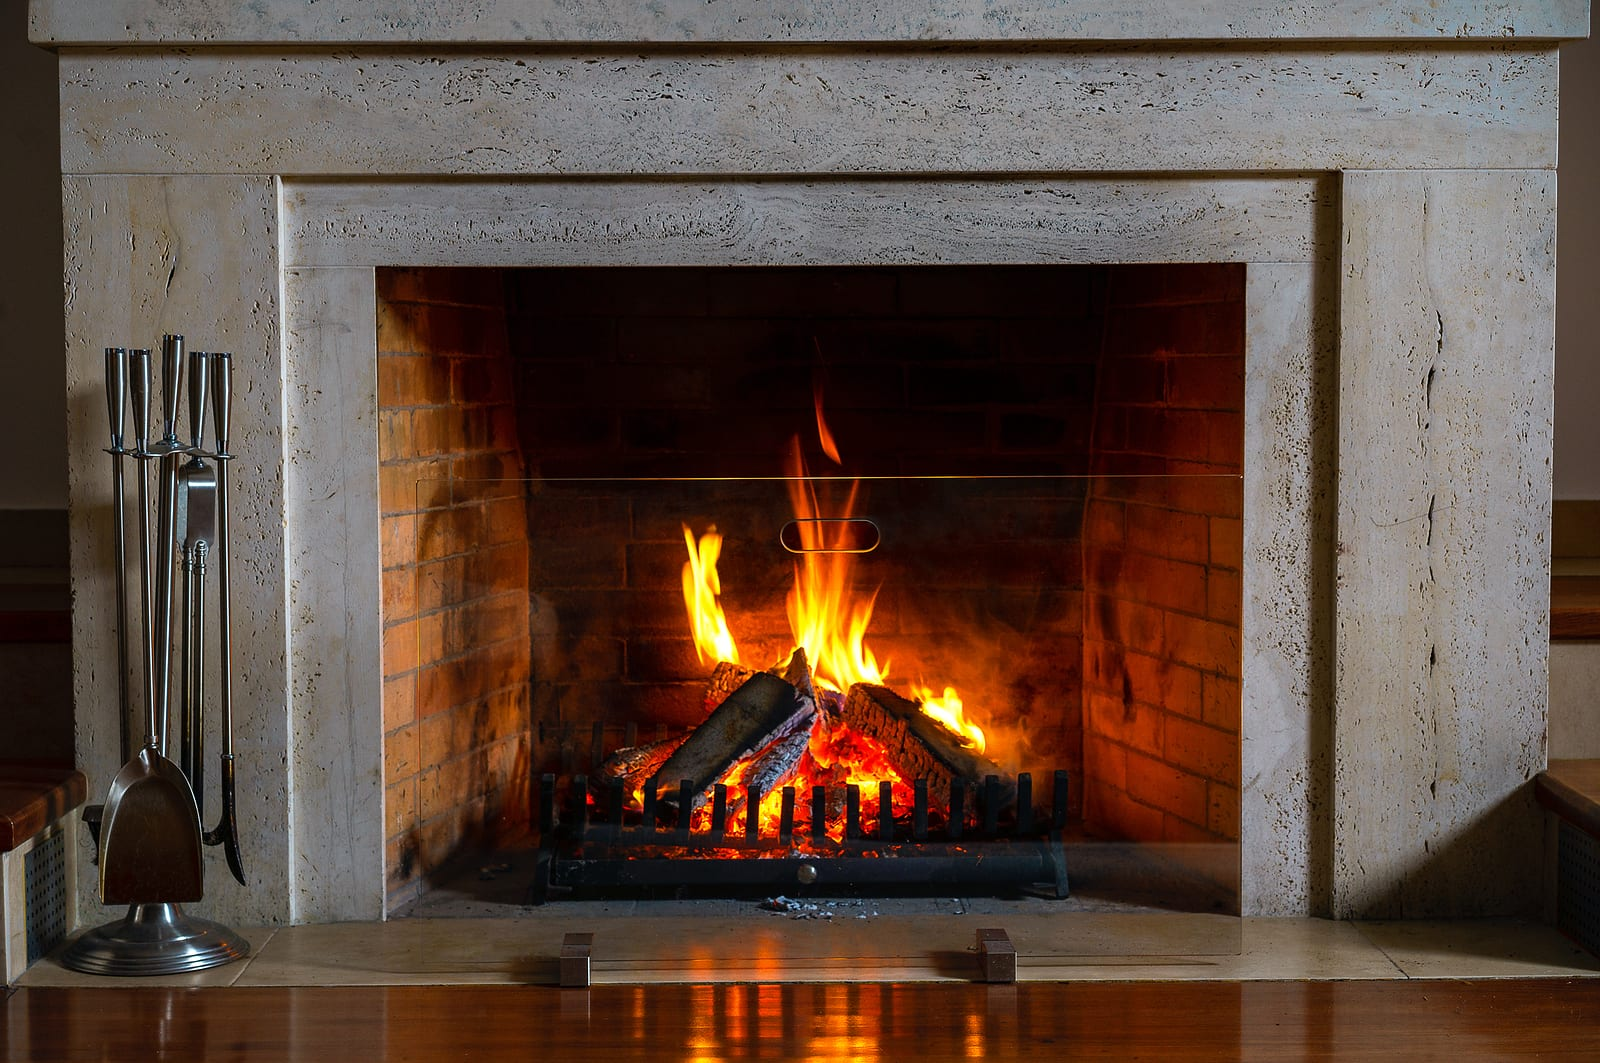 Should You Get a Fireplace?